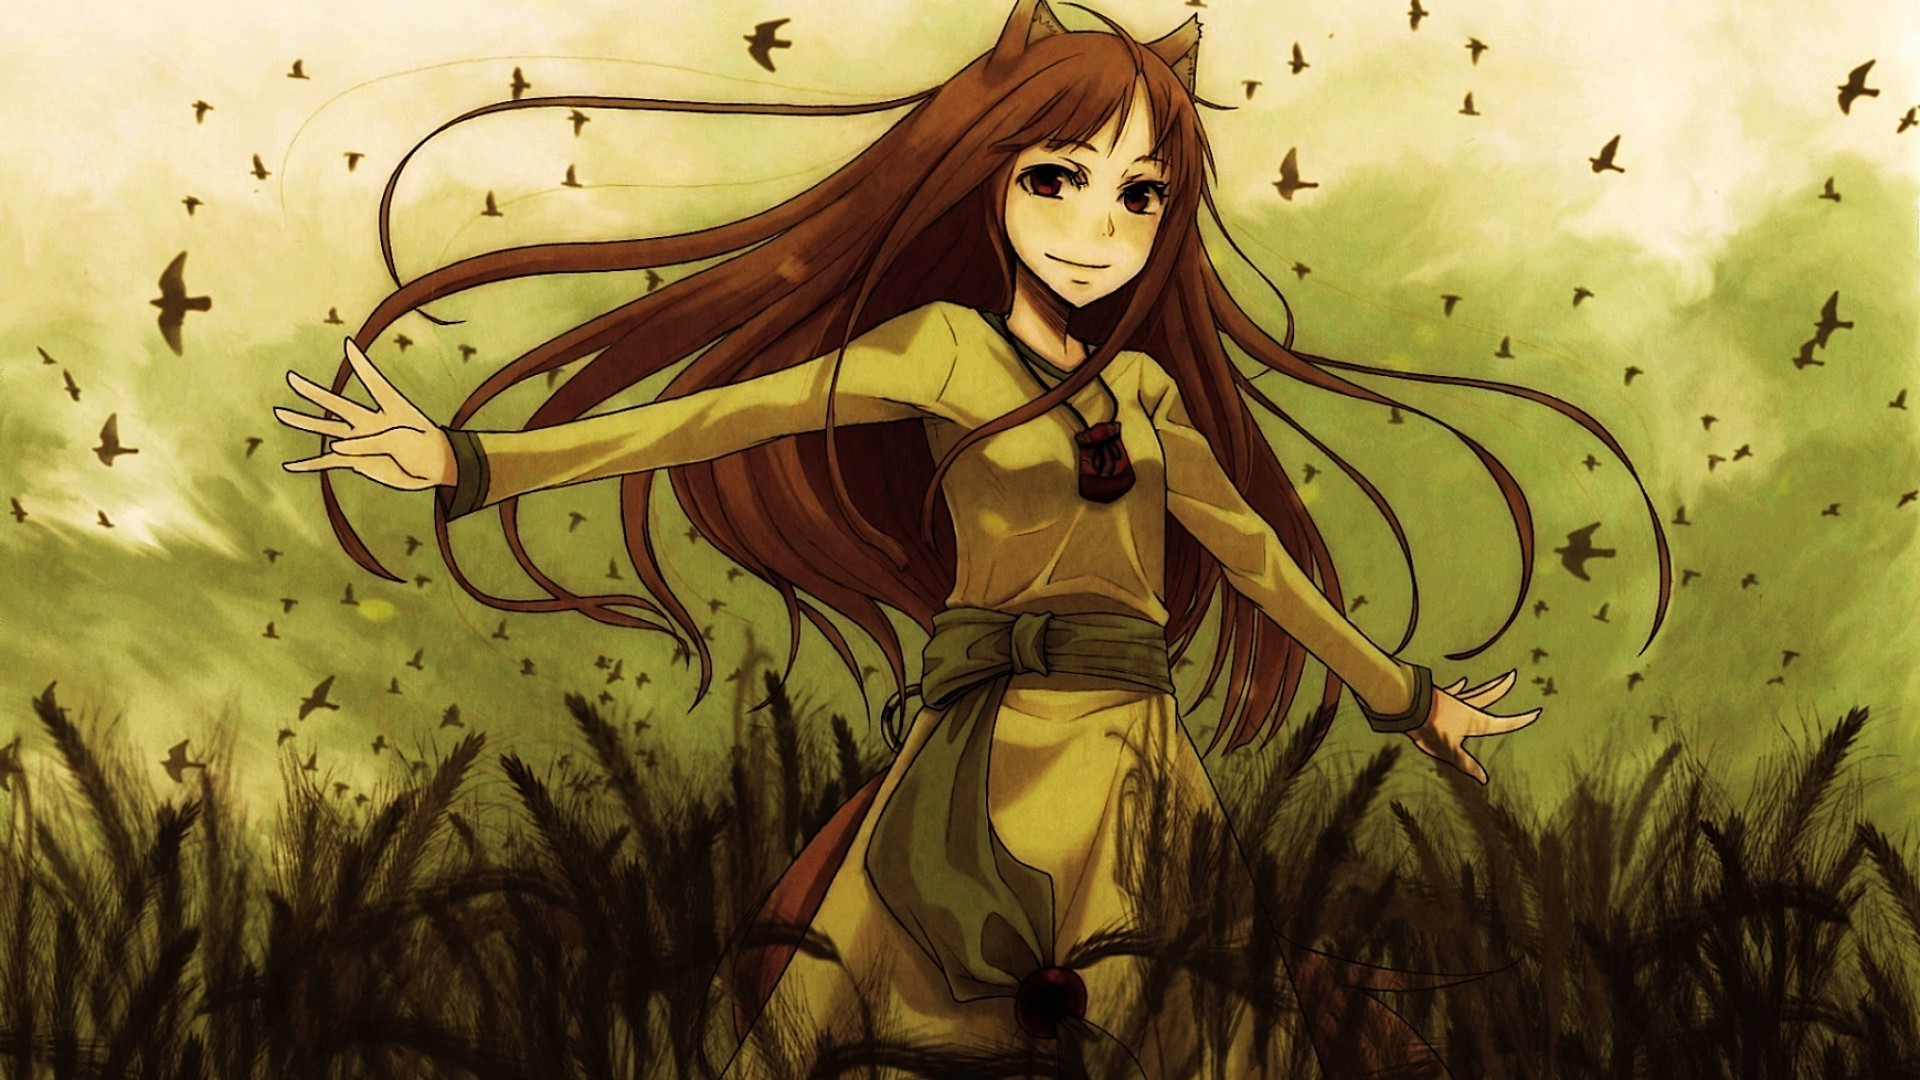 Spice And Wolf Holo Wallpaper Posted By Sarah Johnson